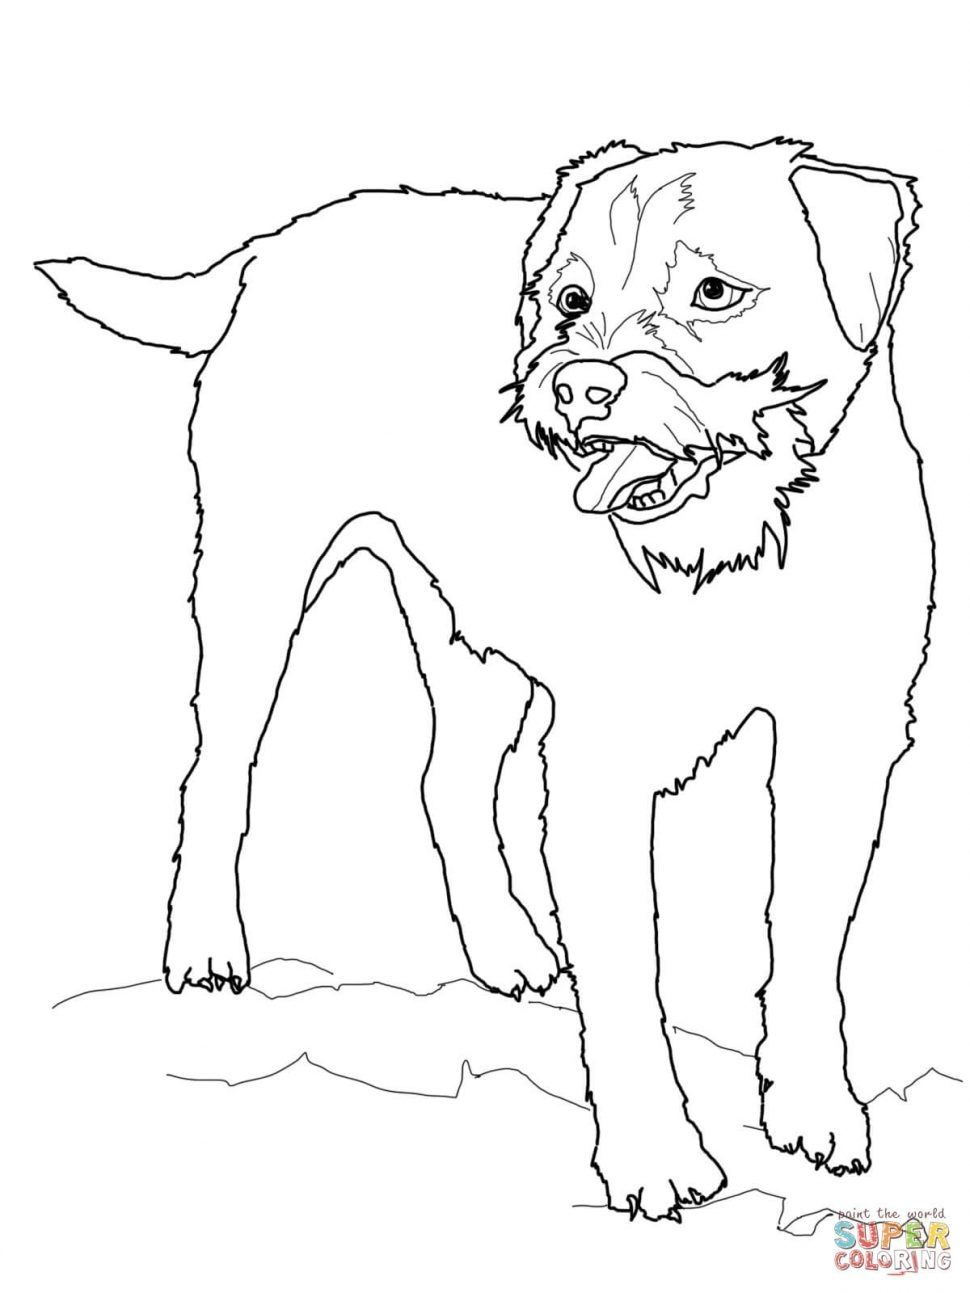 Brussels Griffon Coloring Pages Printable Dog Coloring Page Dog Coloring Book Puppy Coloring Pages